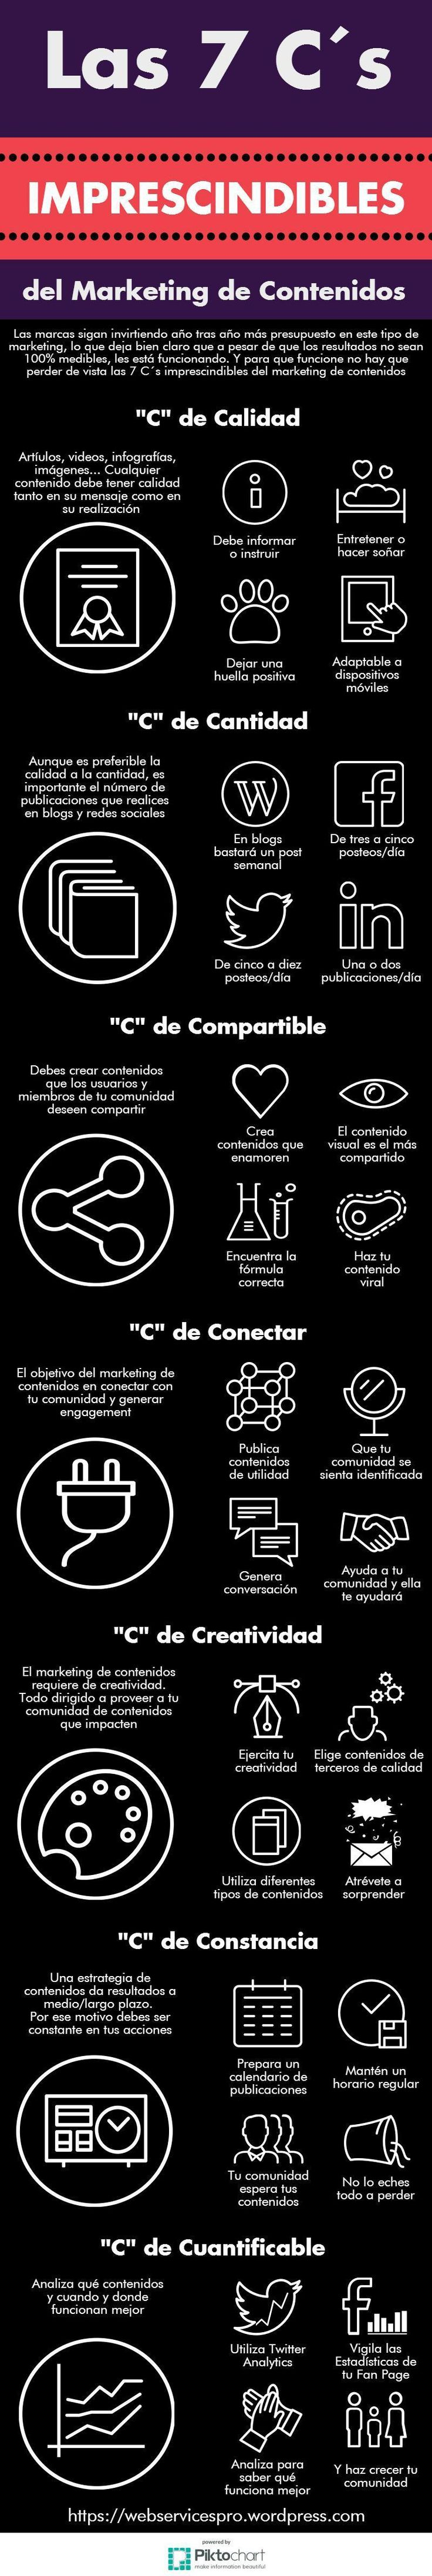 "Las 7 ""C"" imprescindibles del Marketing de Contenidos"